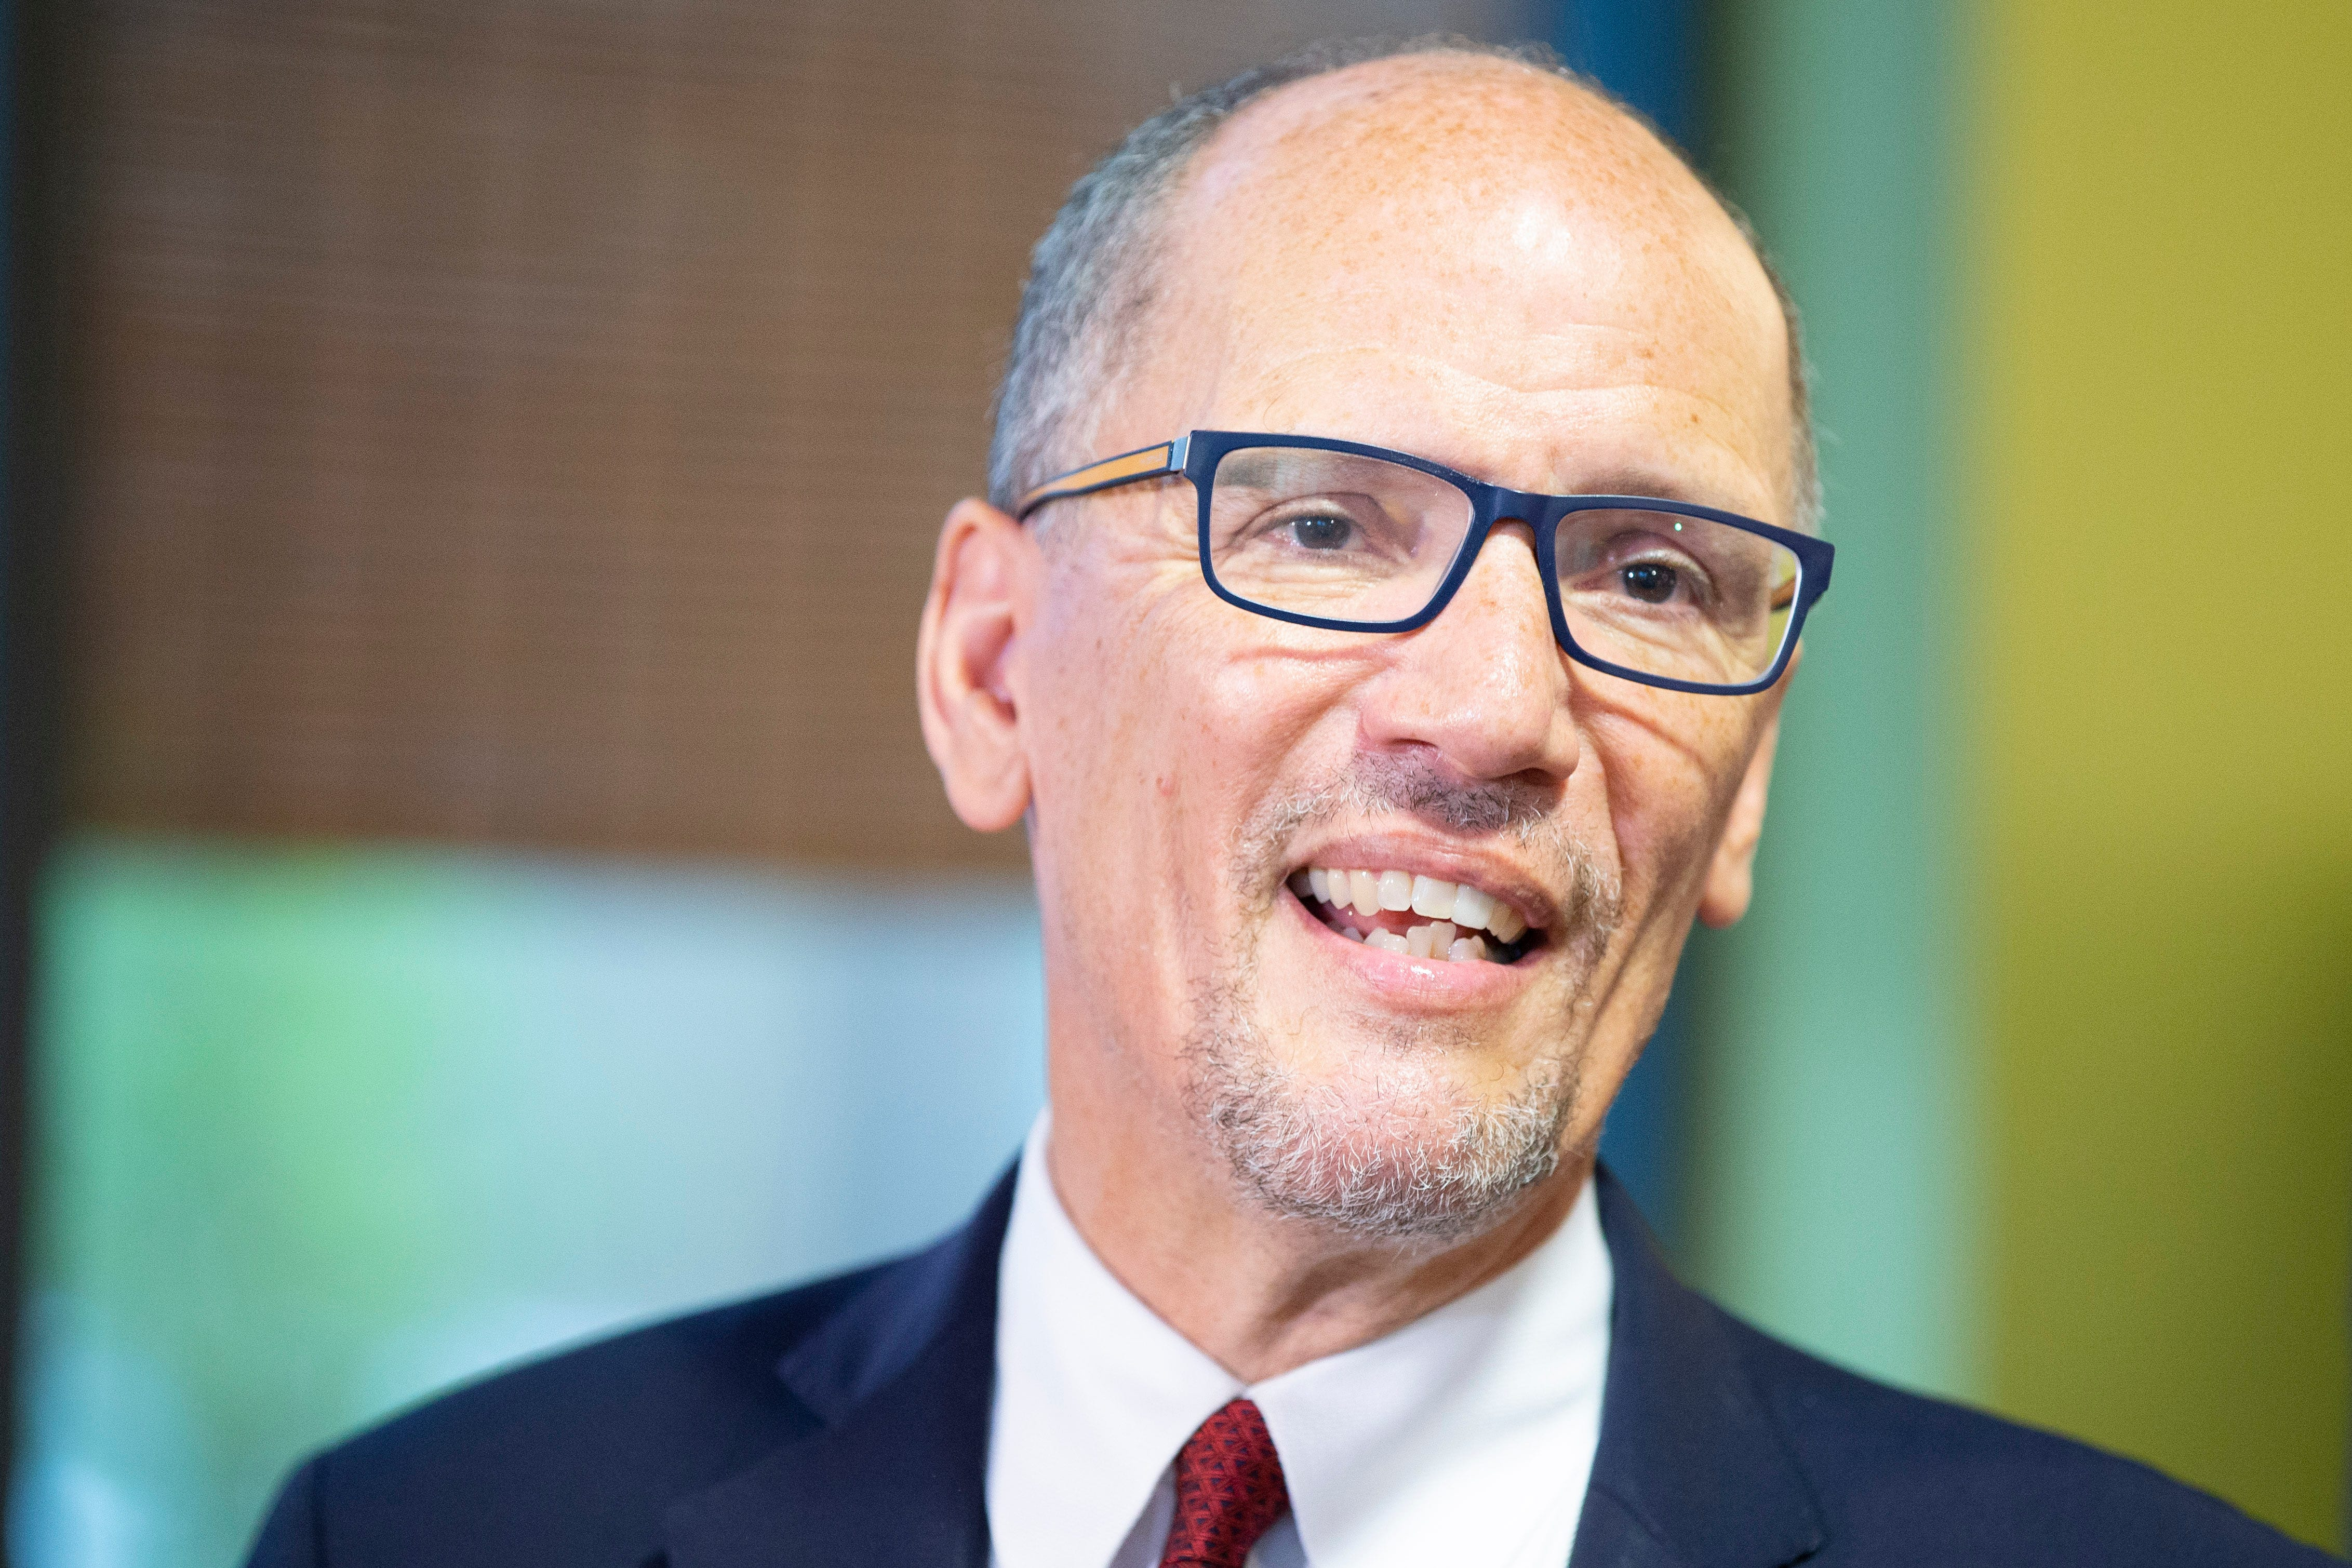 DNC chair Tom Perez reaffirms Democrats  plans for Milwaukee convention after Trump cancels Jacksonville event